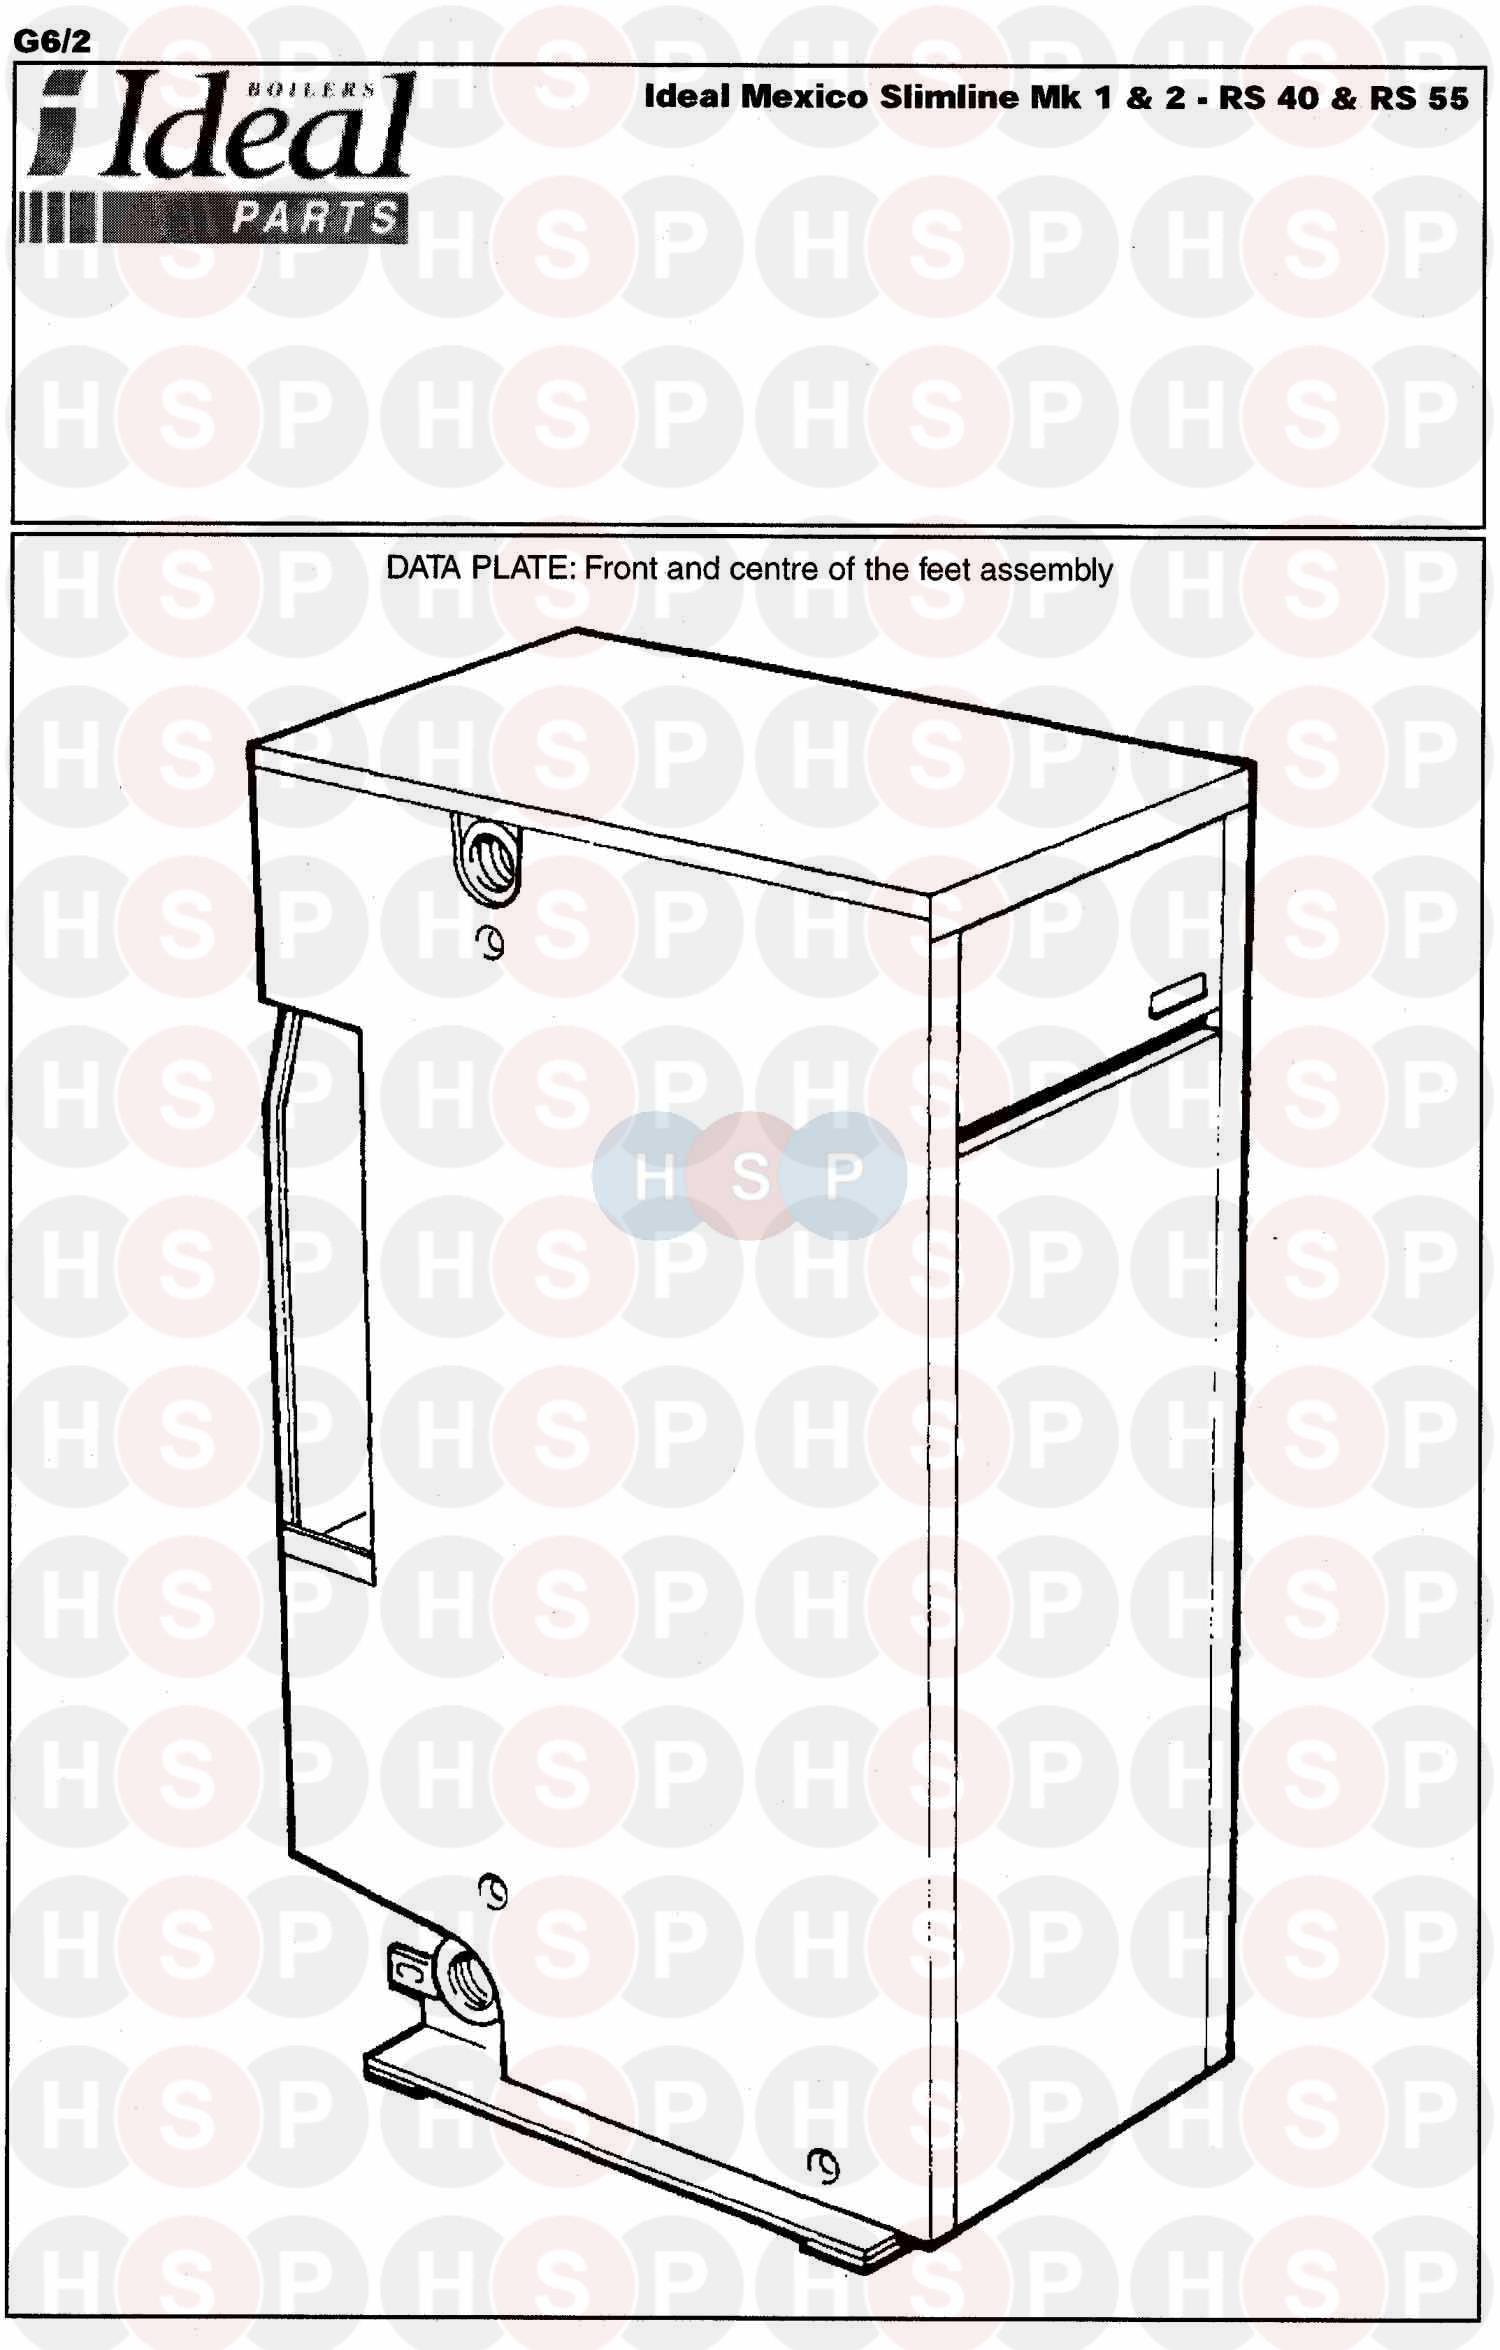 Ideal MEXICO SLIMLINE RS 55 Appliance Diagram (APPLIANCE